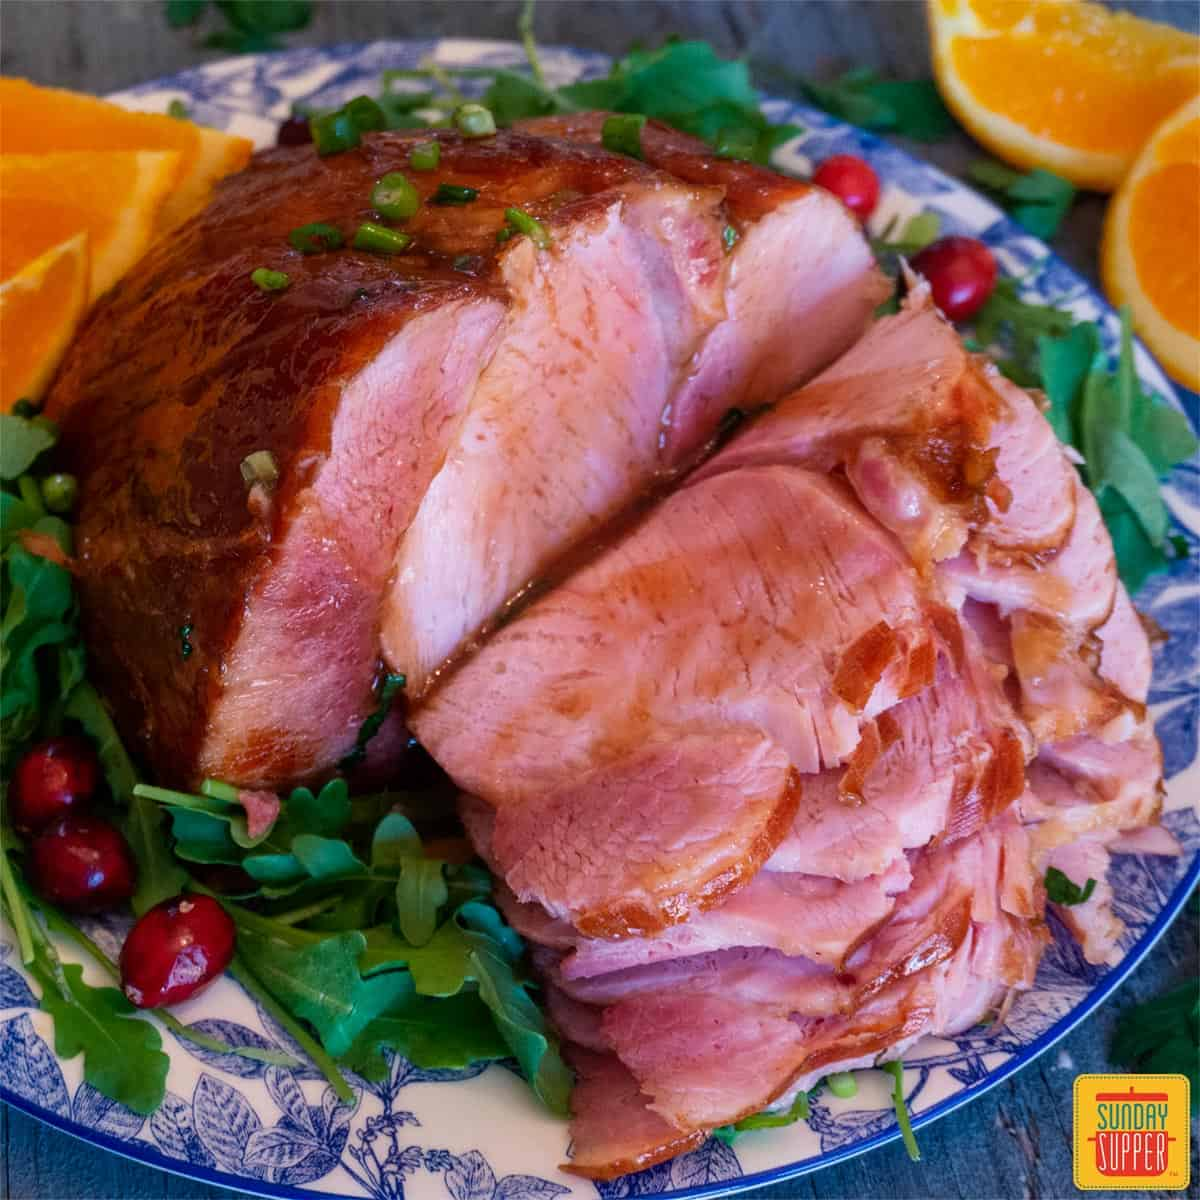 Close up of honey glazed ham slices with greens and oranges